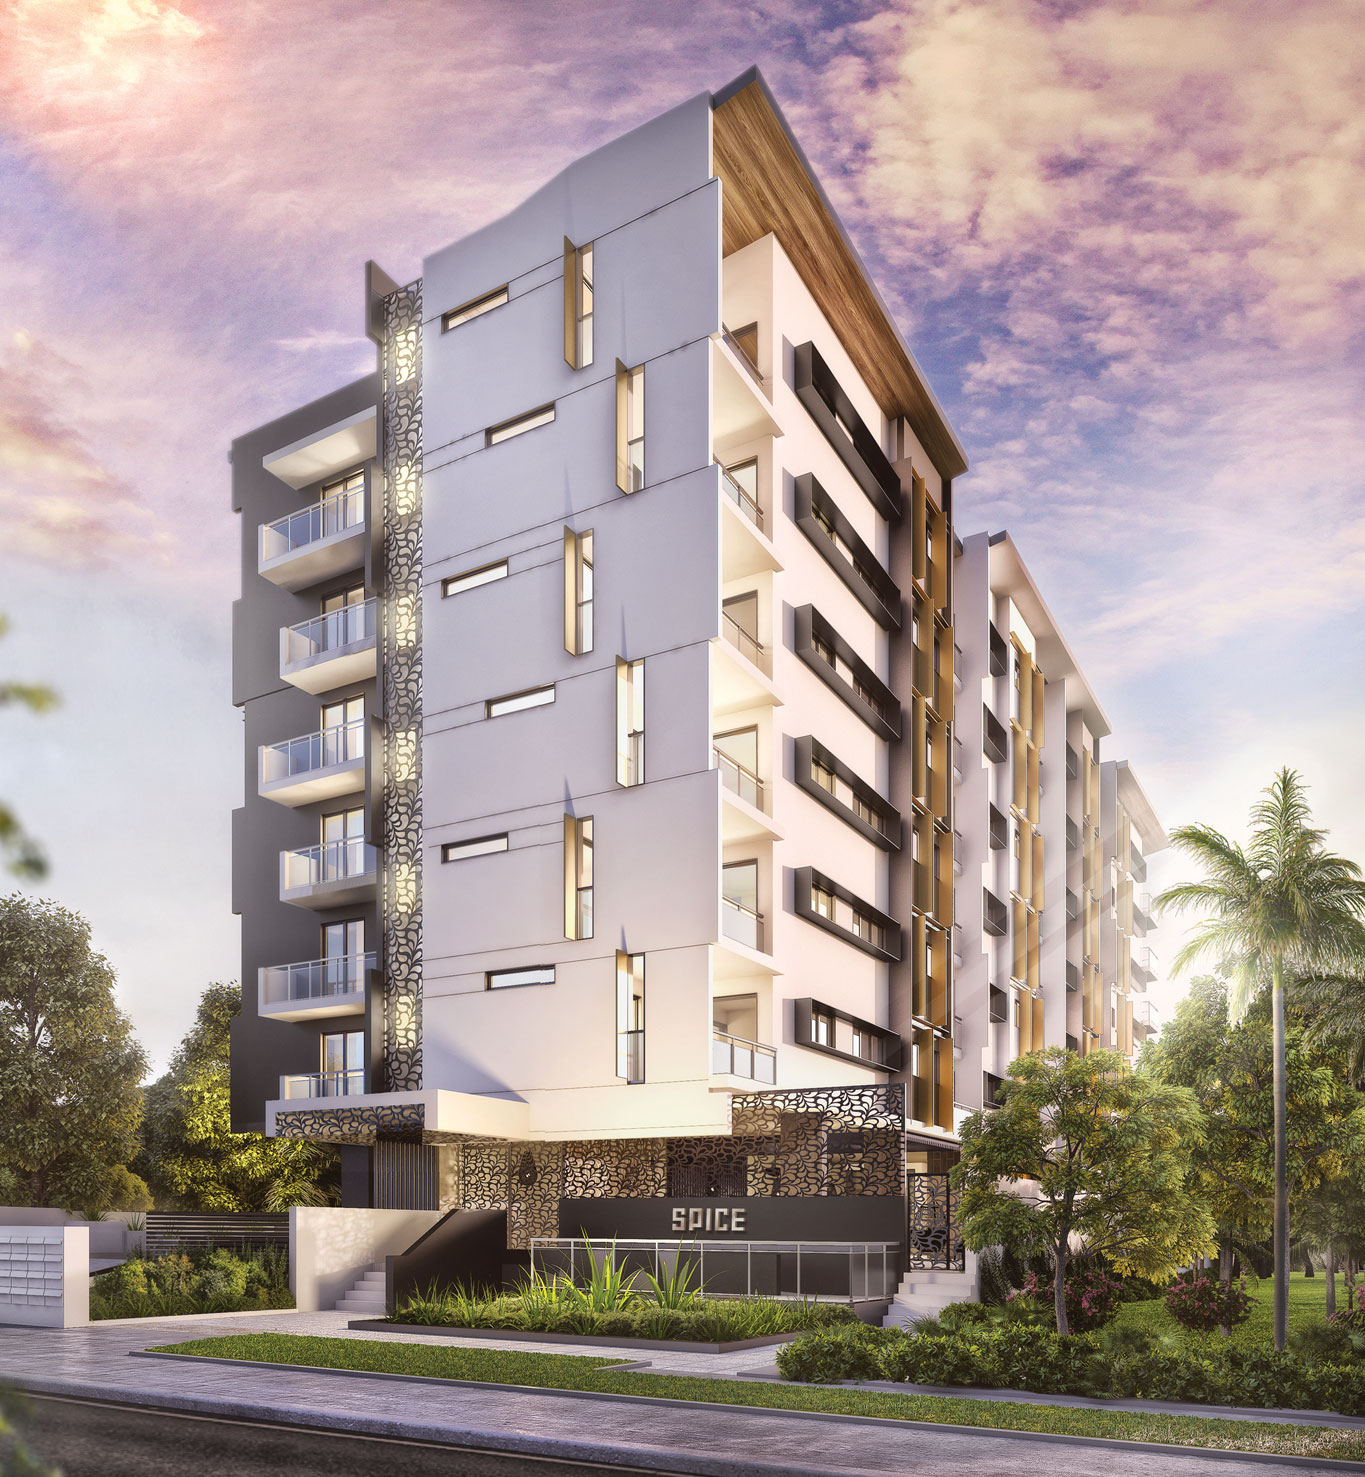 Our_projects_spice_broadbeach.jpg